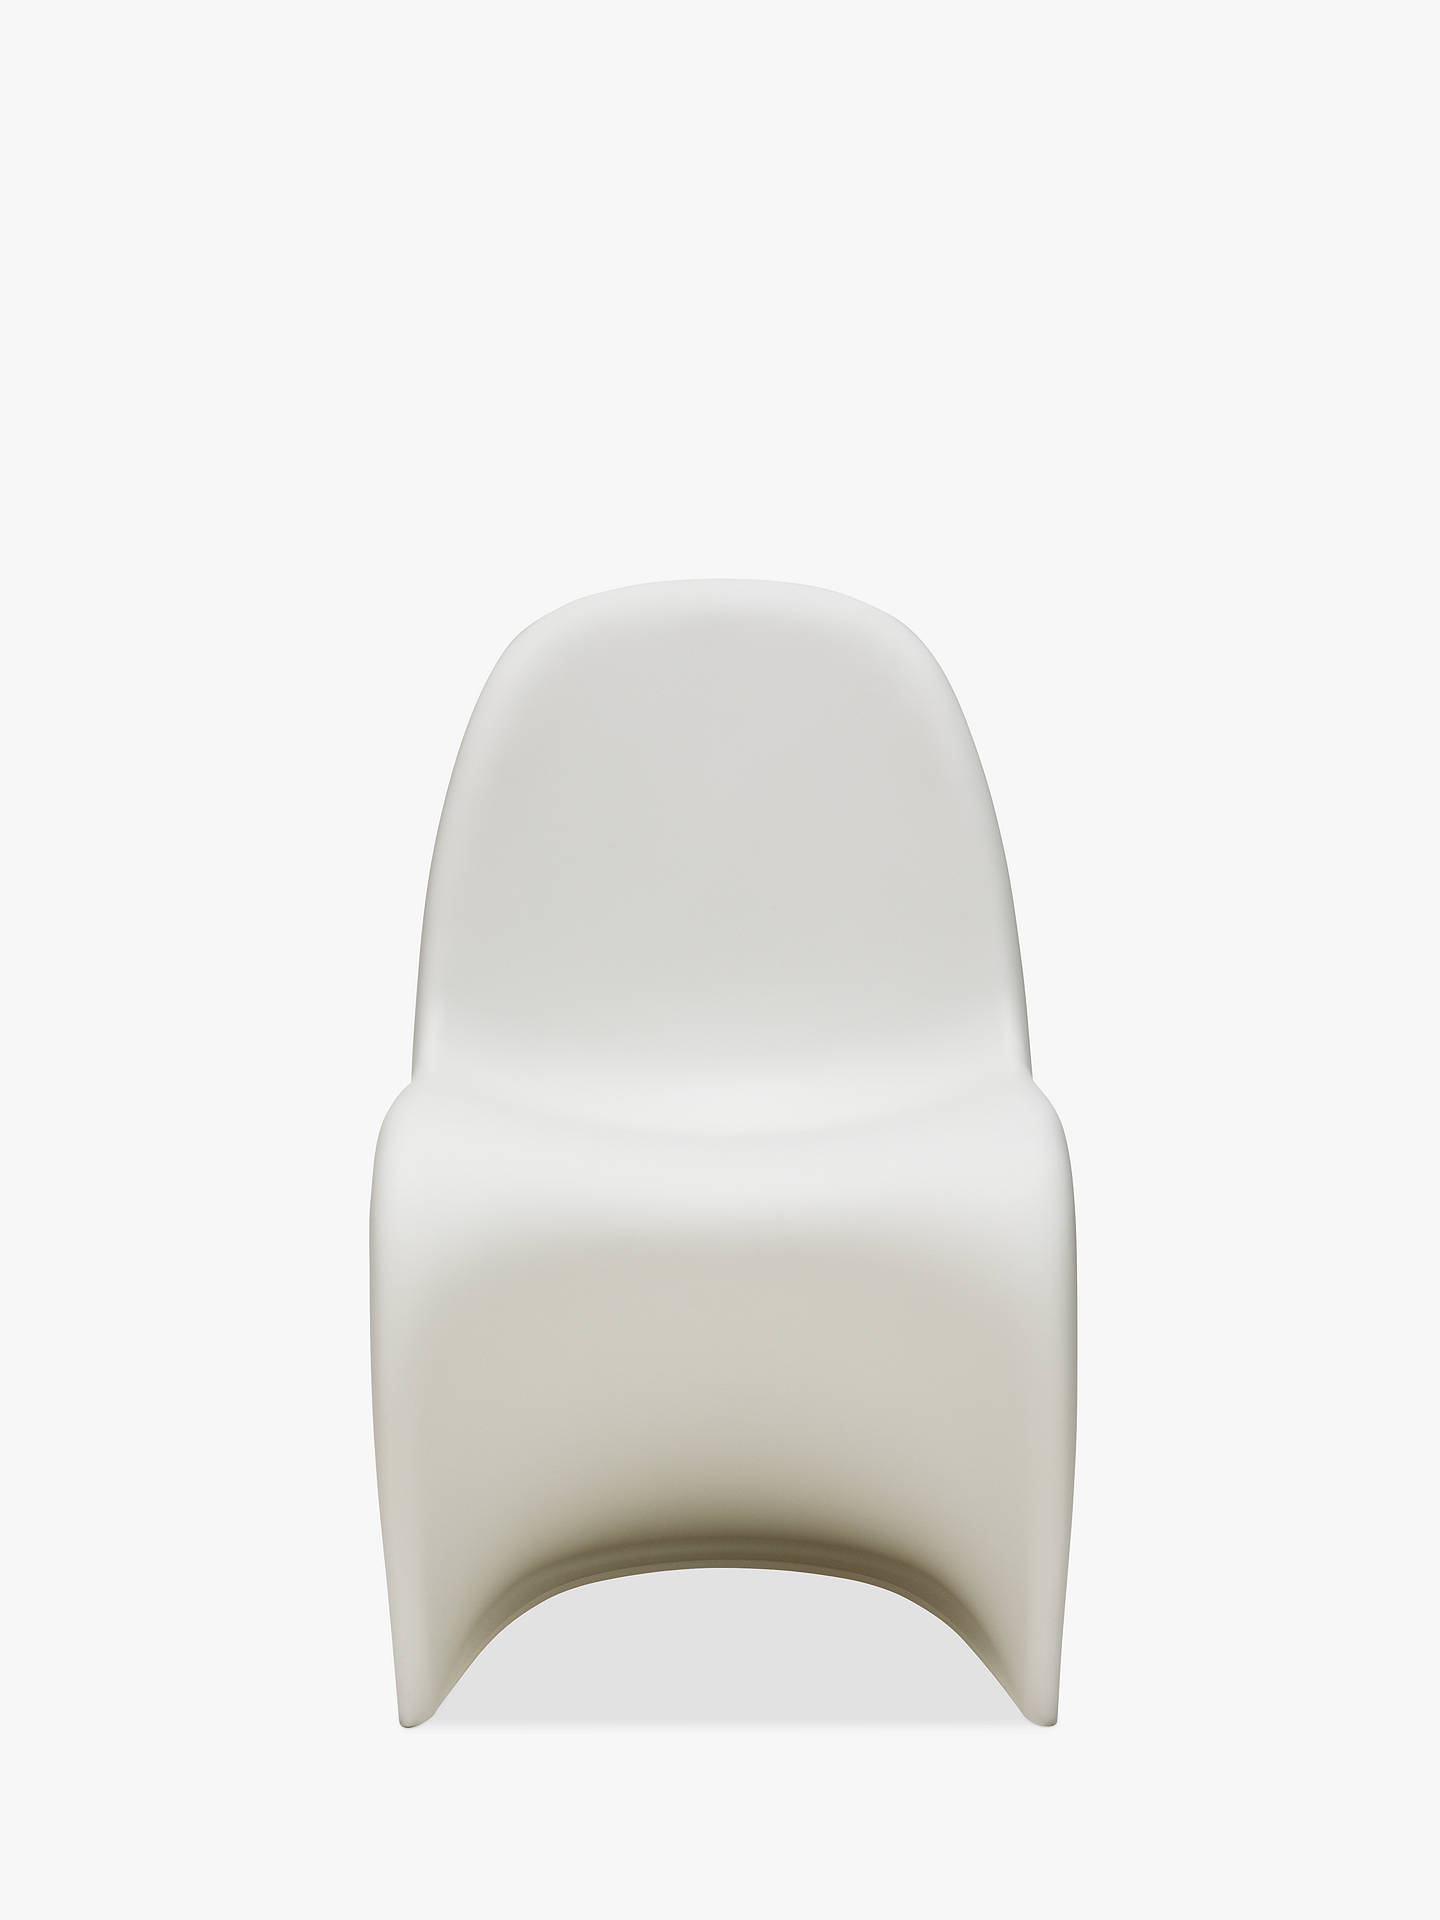 BuyVitra Panton S Chair, White Online at johnlewis.com